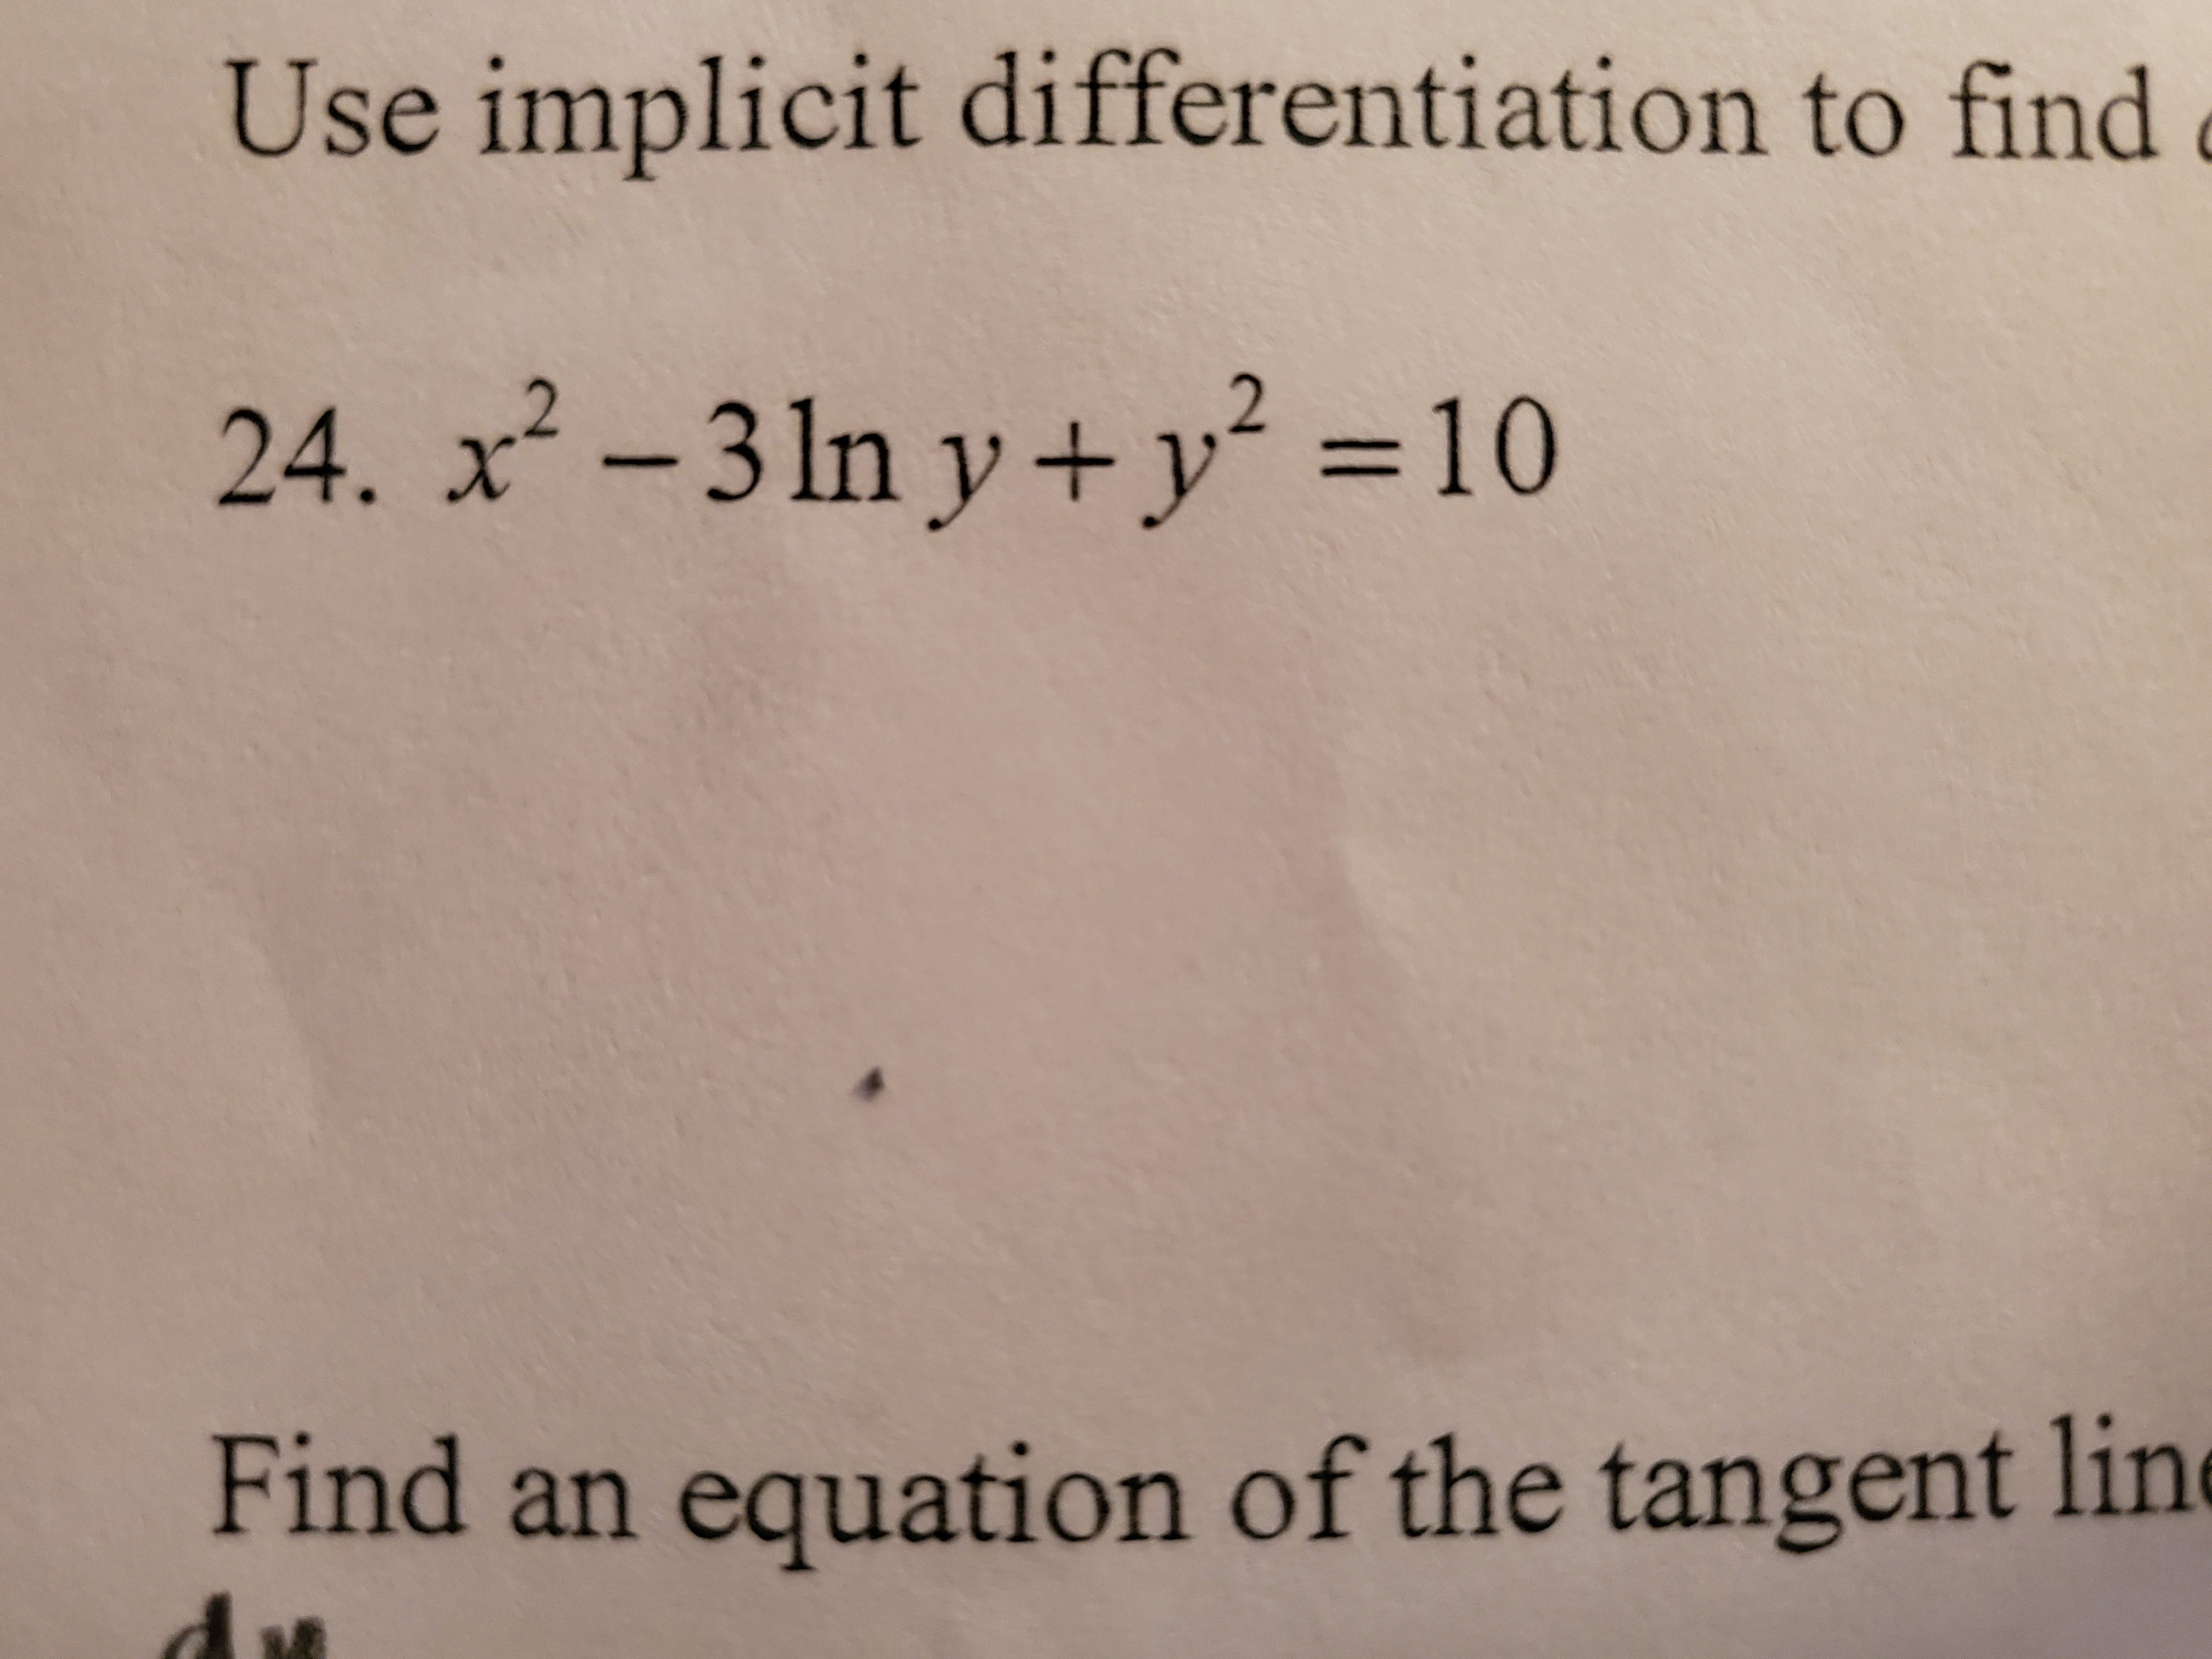 Use implicit di fferentiation to find 24. x-31n y +y = 10 Find an equation of the tangent line